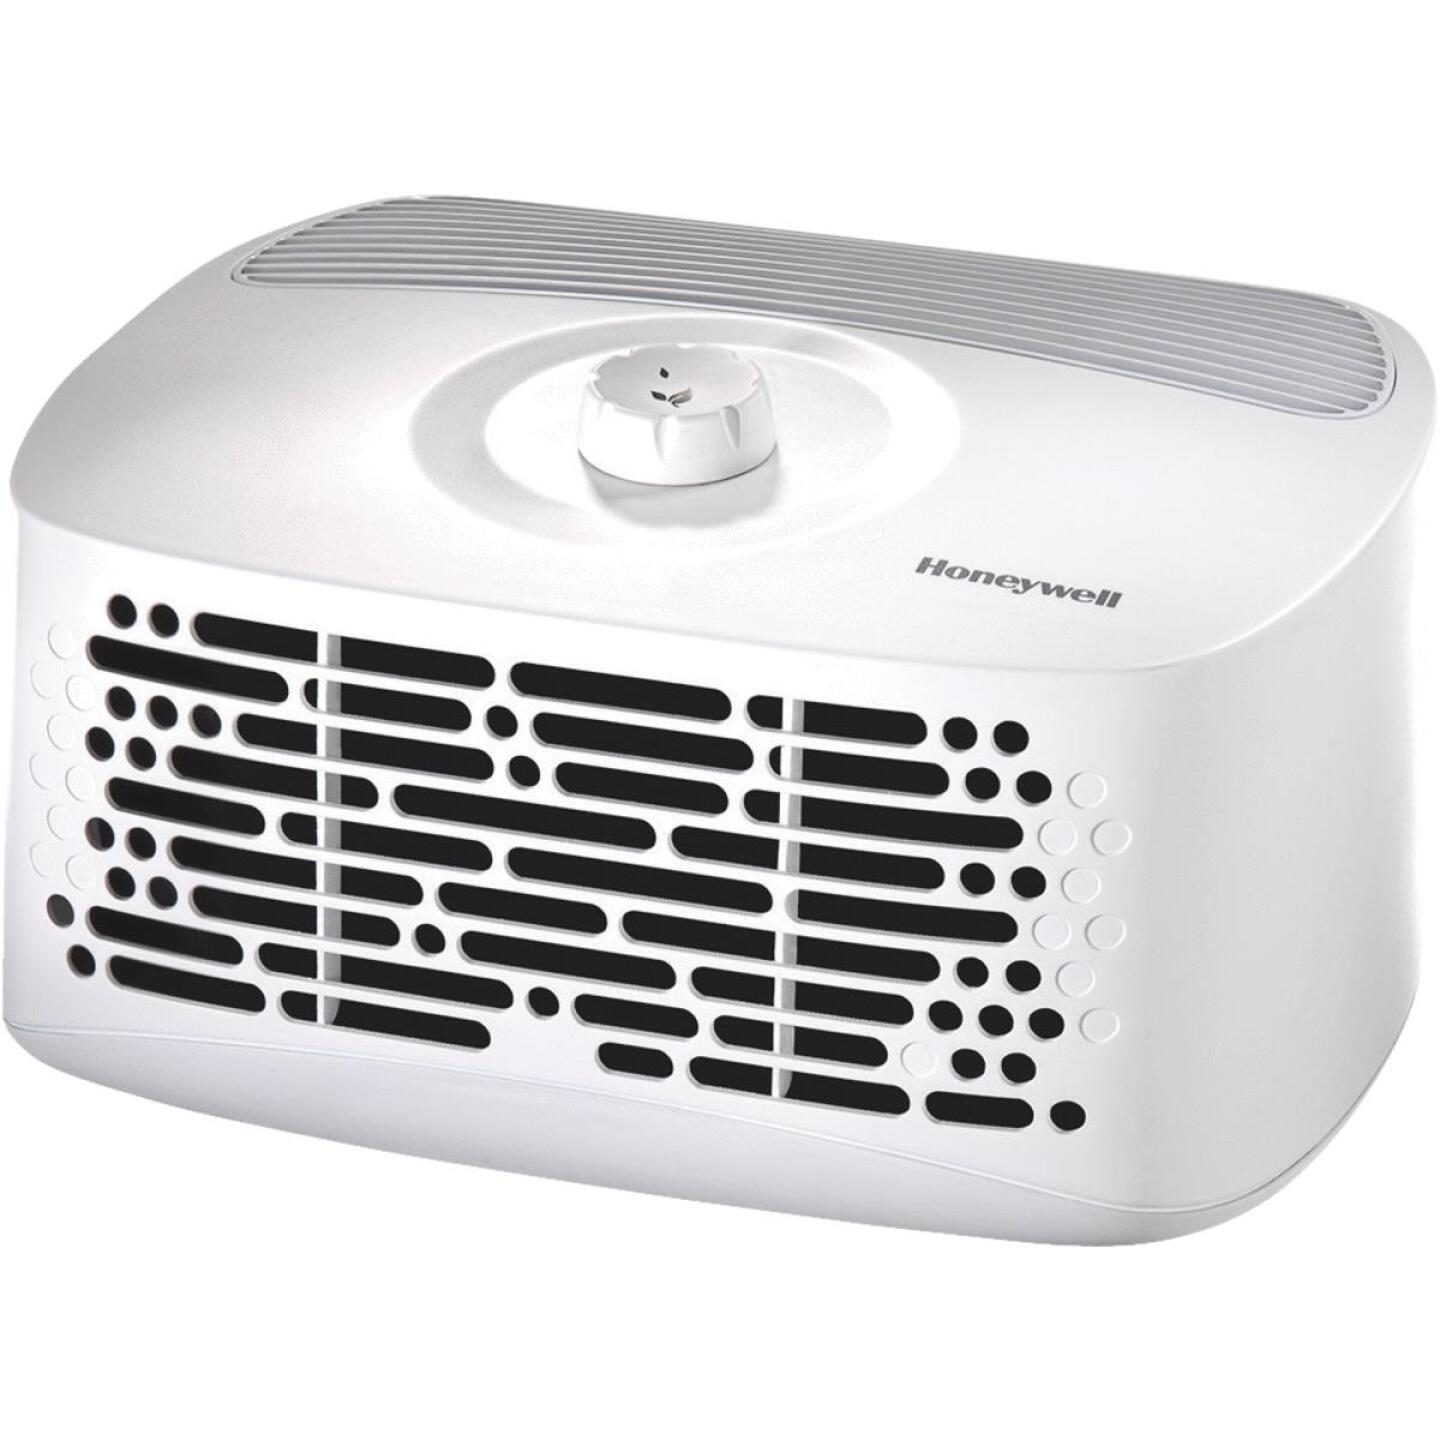 Honeywell HEPAClean 110 Sq. Ft. White Tabletop Air Purifier Image 1